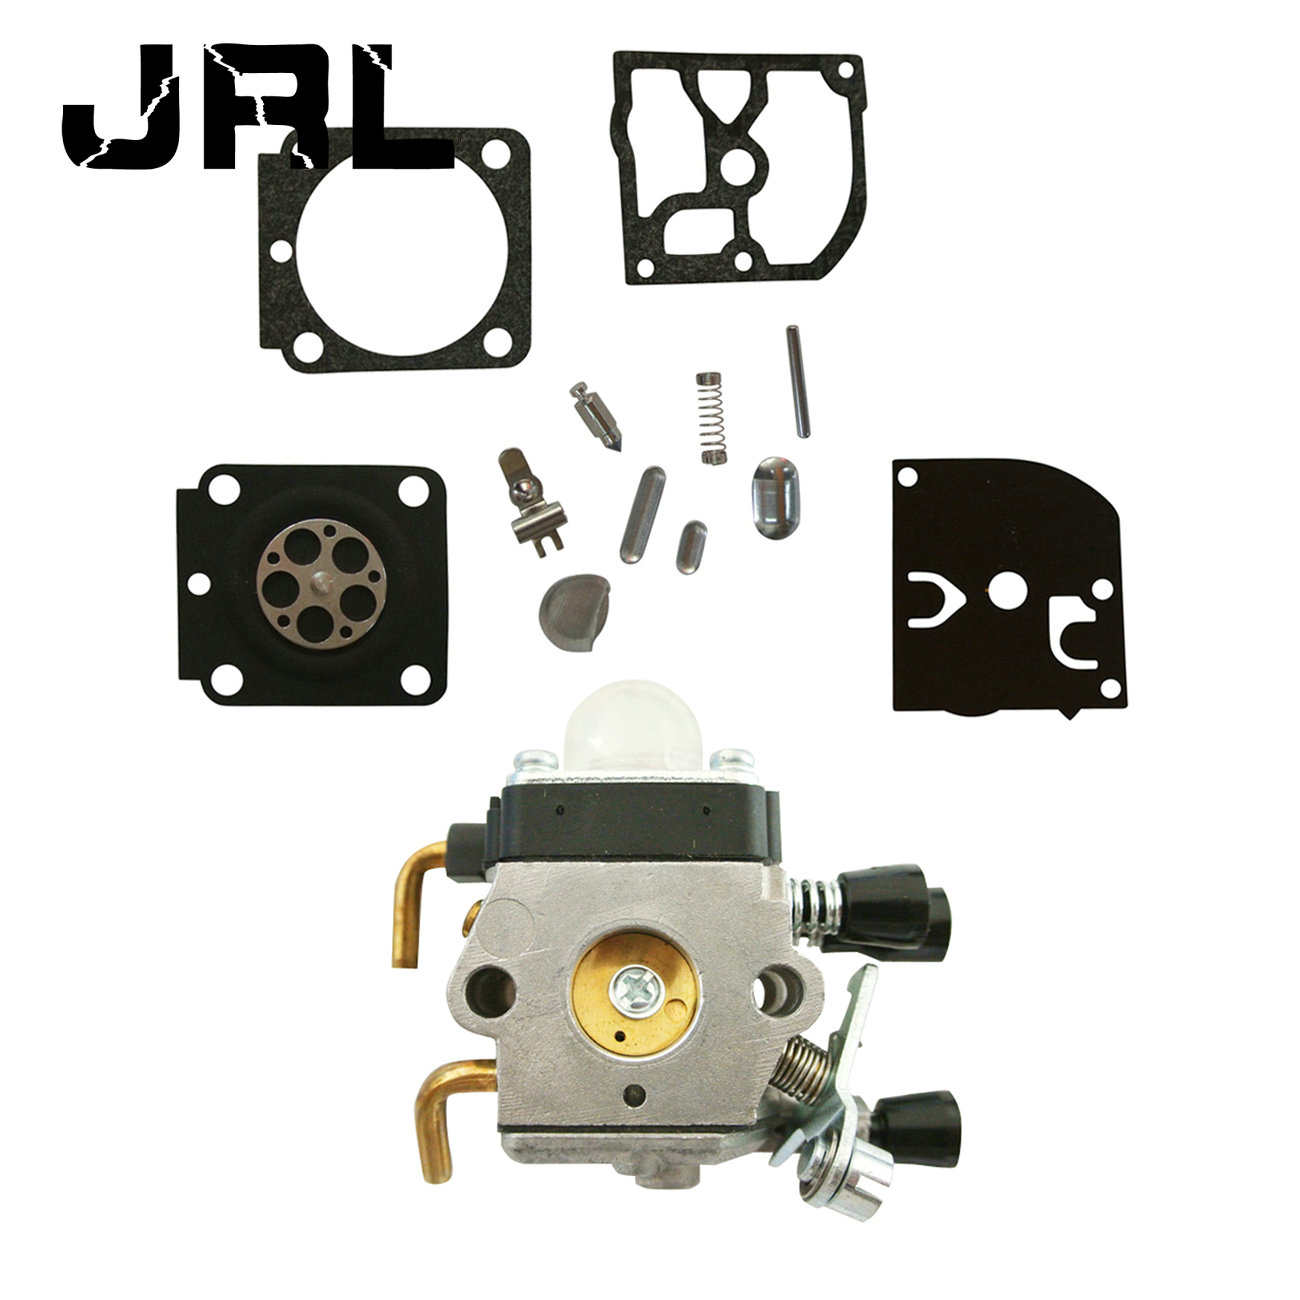 Carb <font><b>Carburetor</b></font> & Diaphram Repair Kit <font><b>For</b></font> <font><b>Stihl</b></font> <font><b>FS38</b></font> <font><b>FS45</b></font> FS46 ZAMA C1Q S143 image